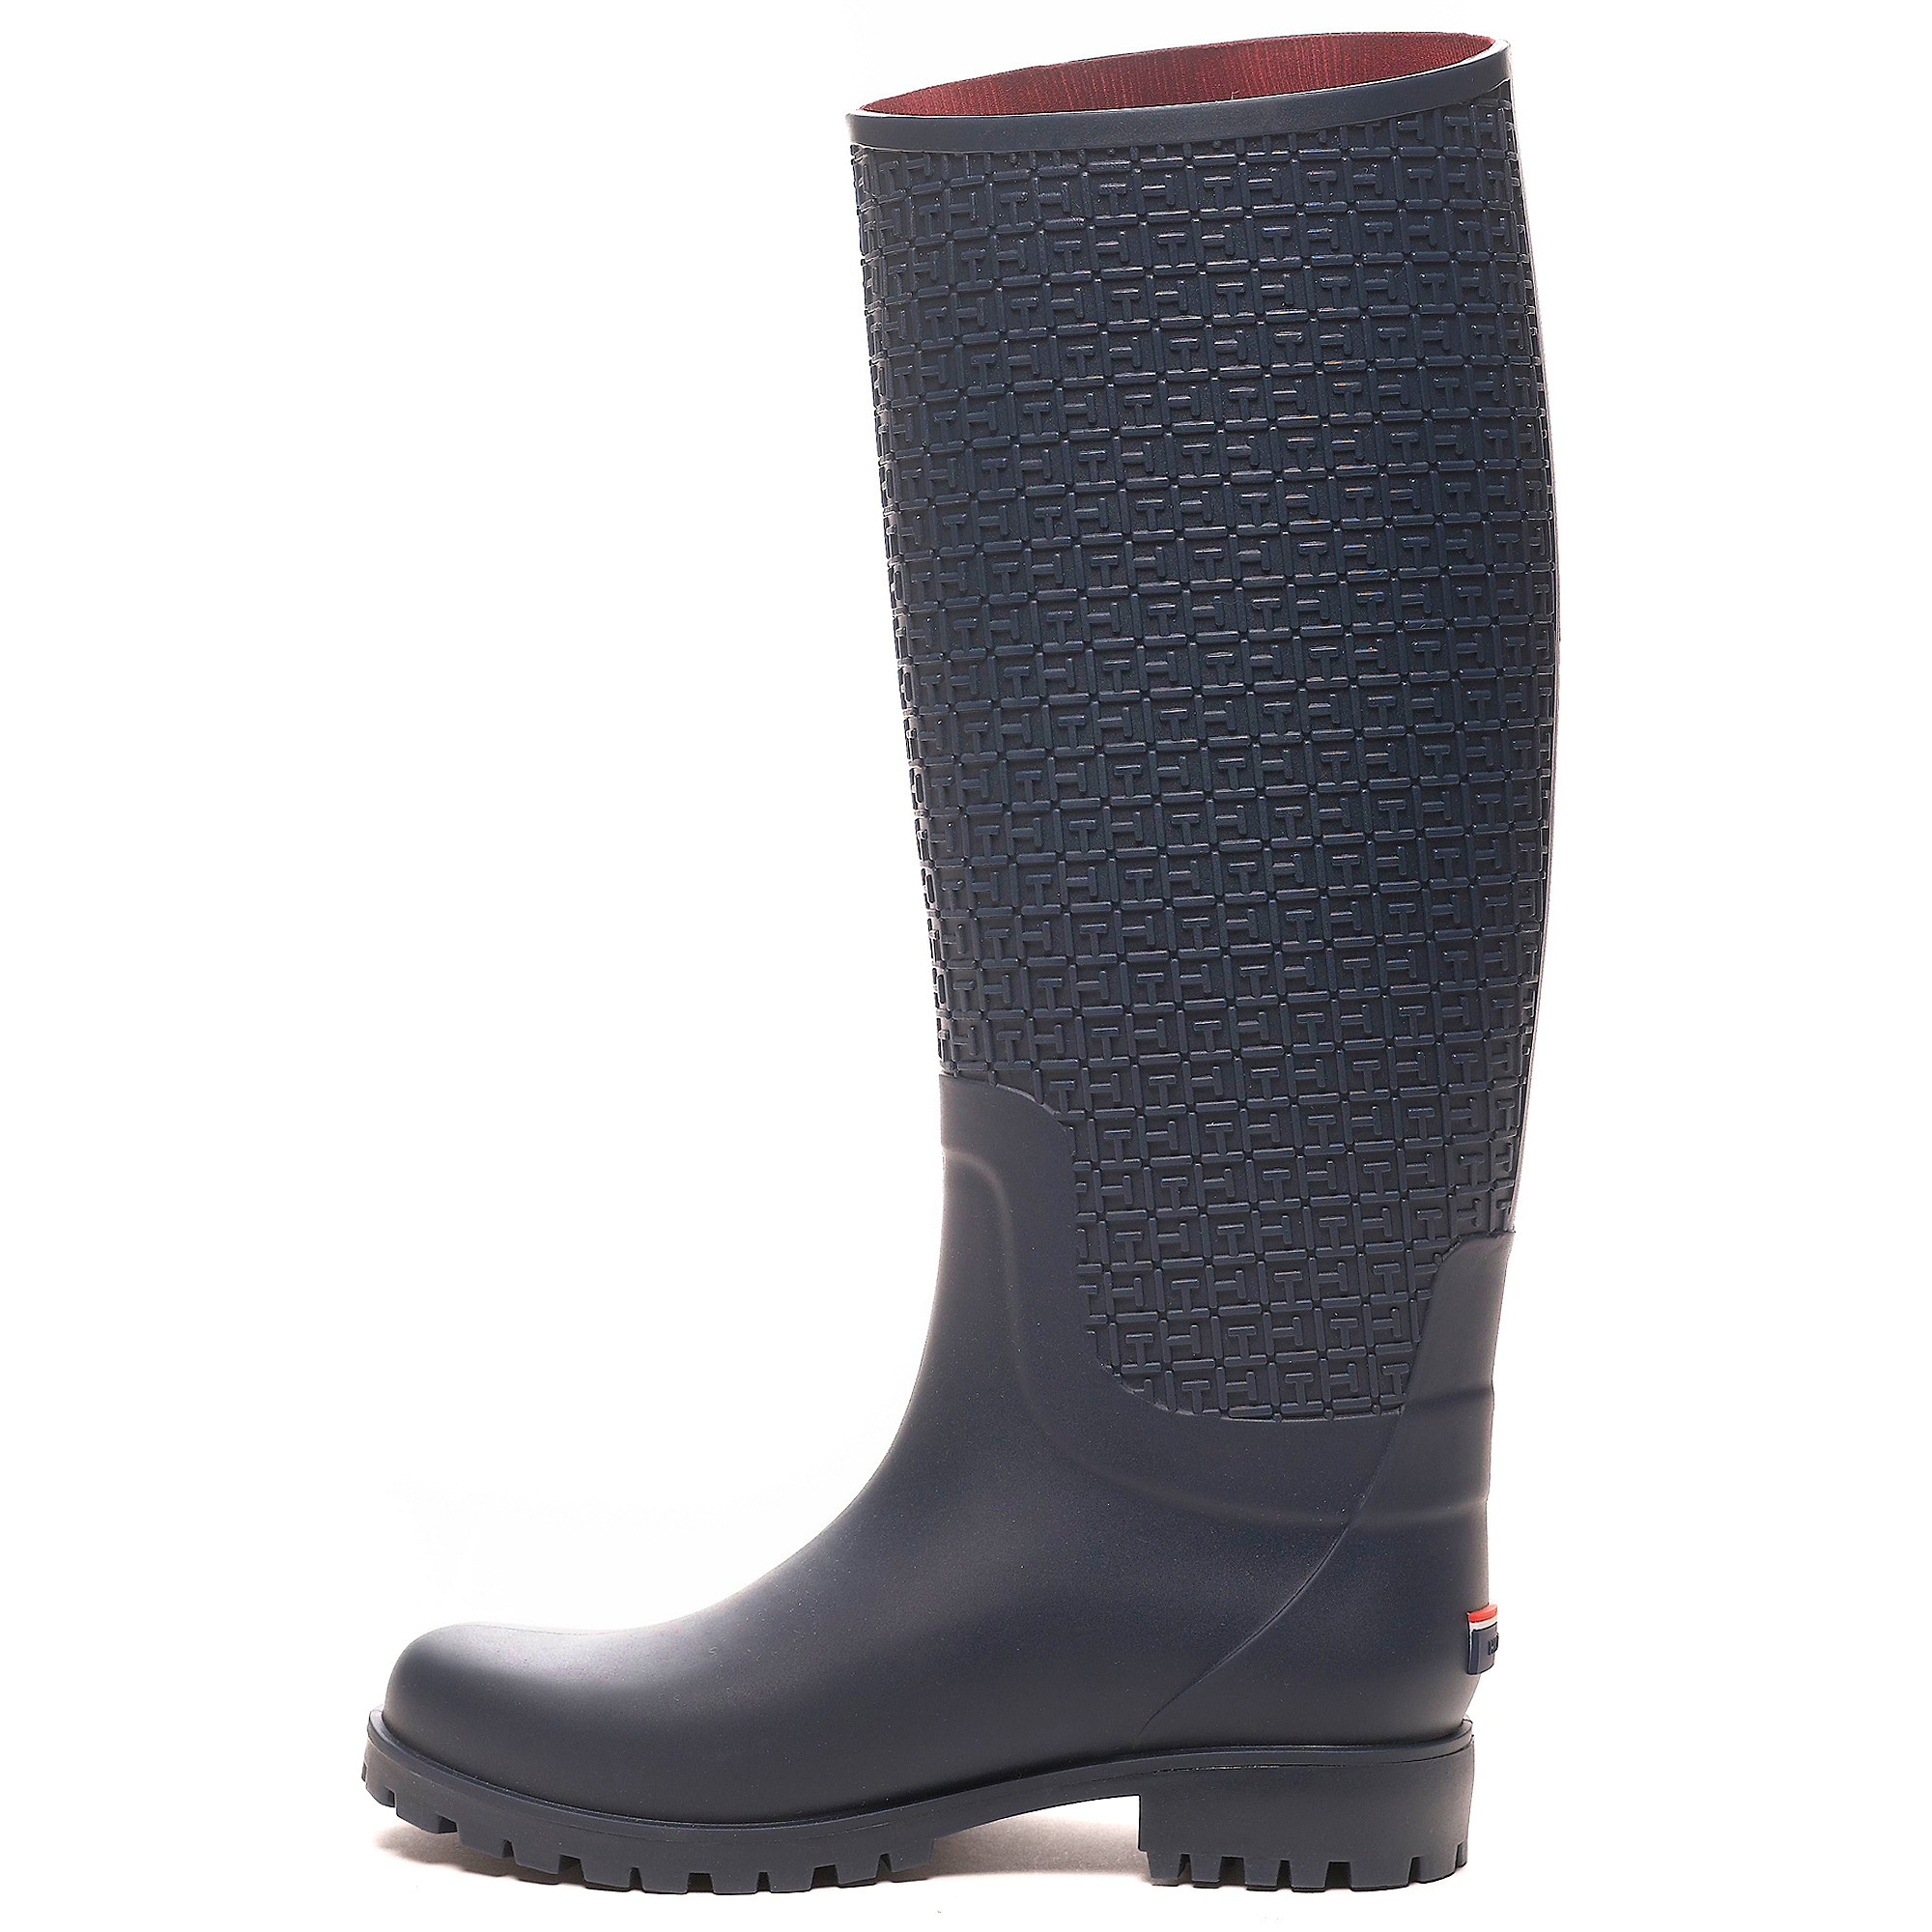 Awesome Page Tommy Hilfiger For Women Womens Boots Womens Shoes Womens Boots